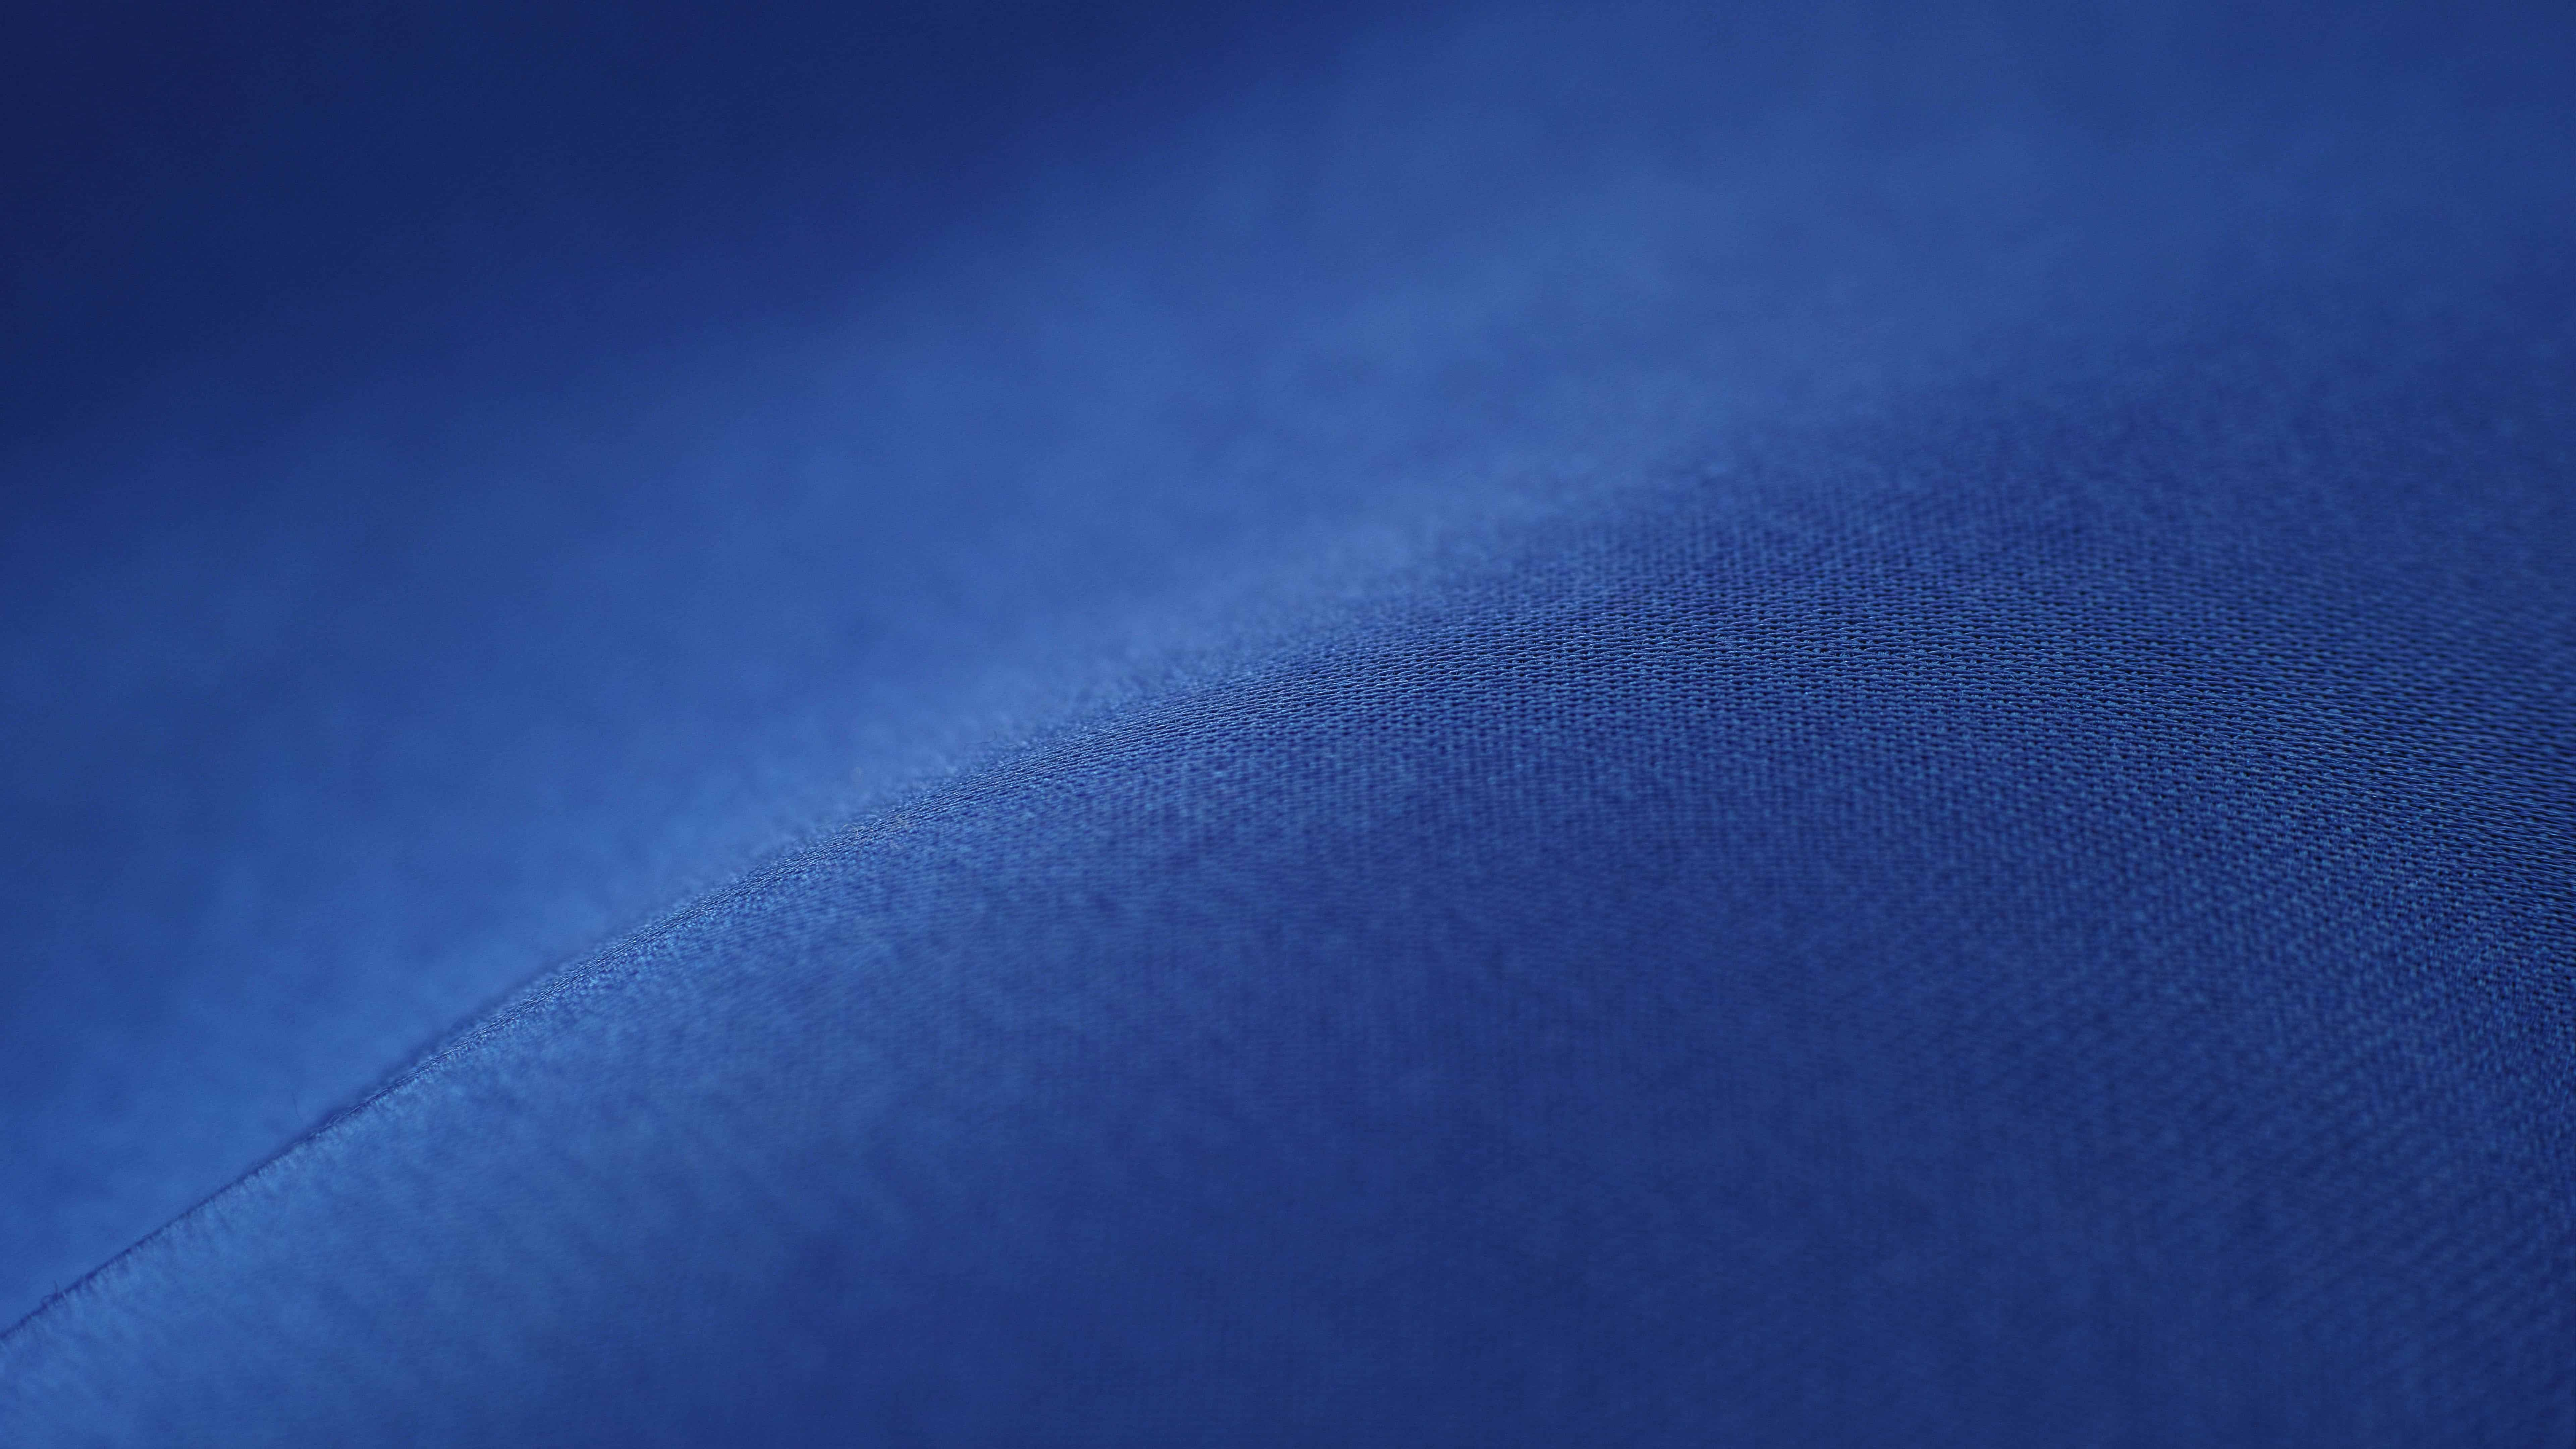 blue fabric pattern uhd 8k wallpaper